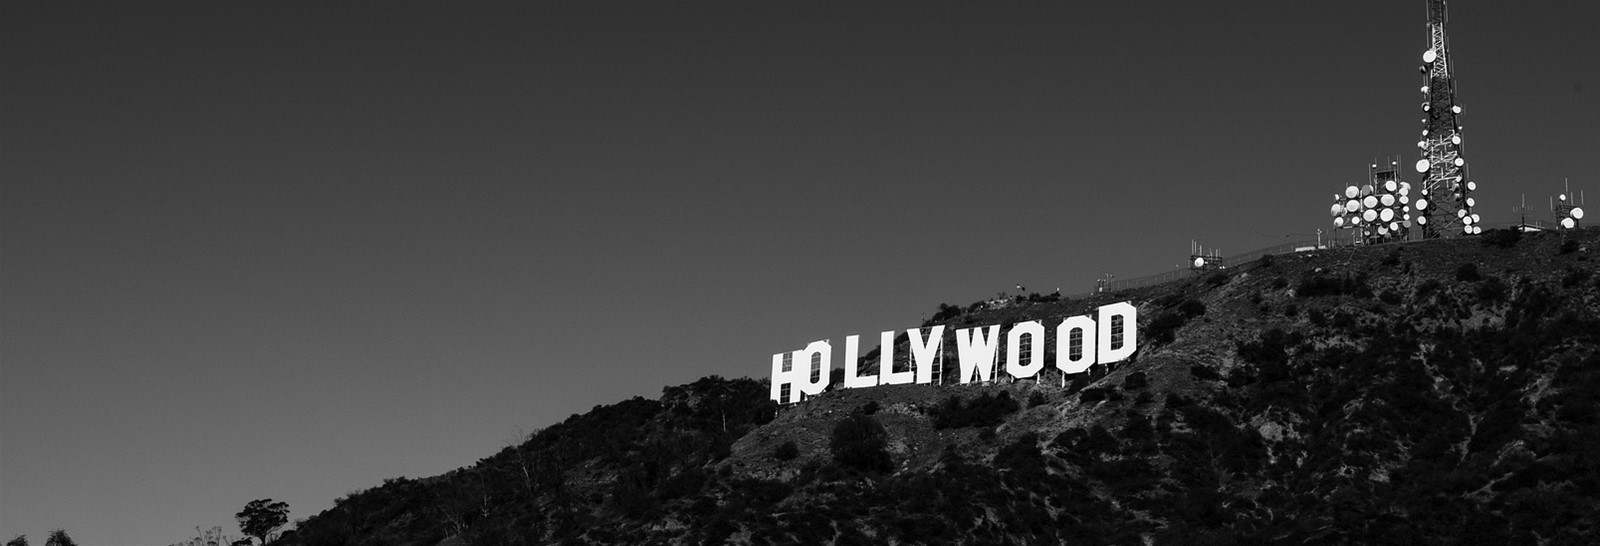 When size does matter - the iconic Hollywood sign